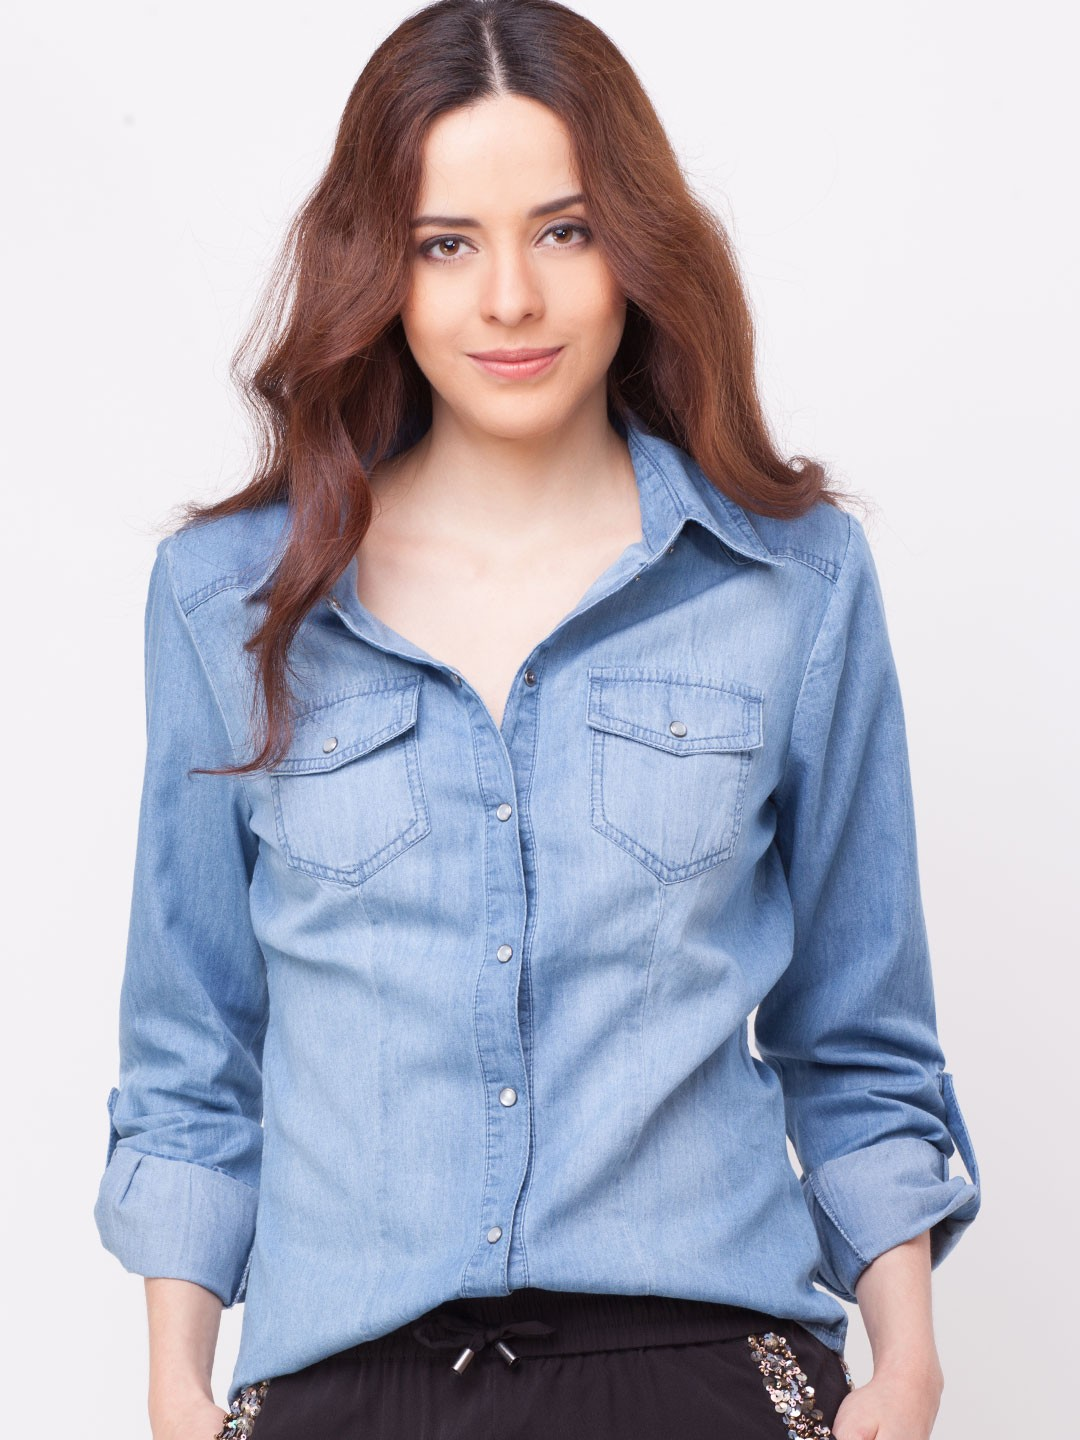 buy only faded denim shirt for women women 39 s denim